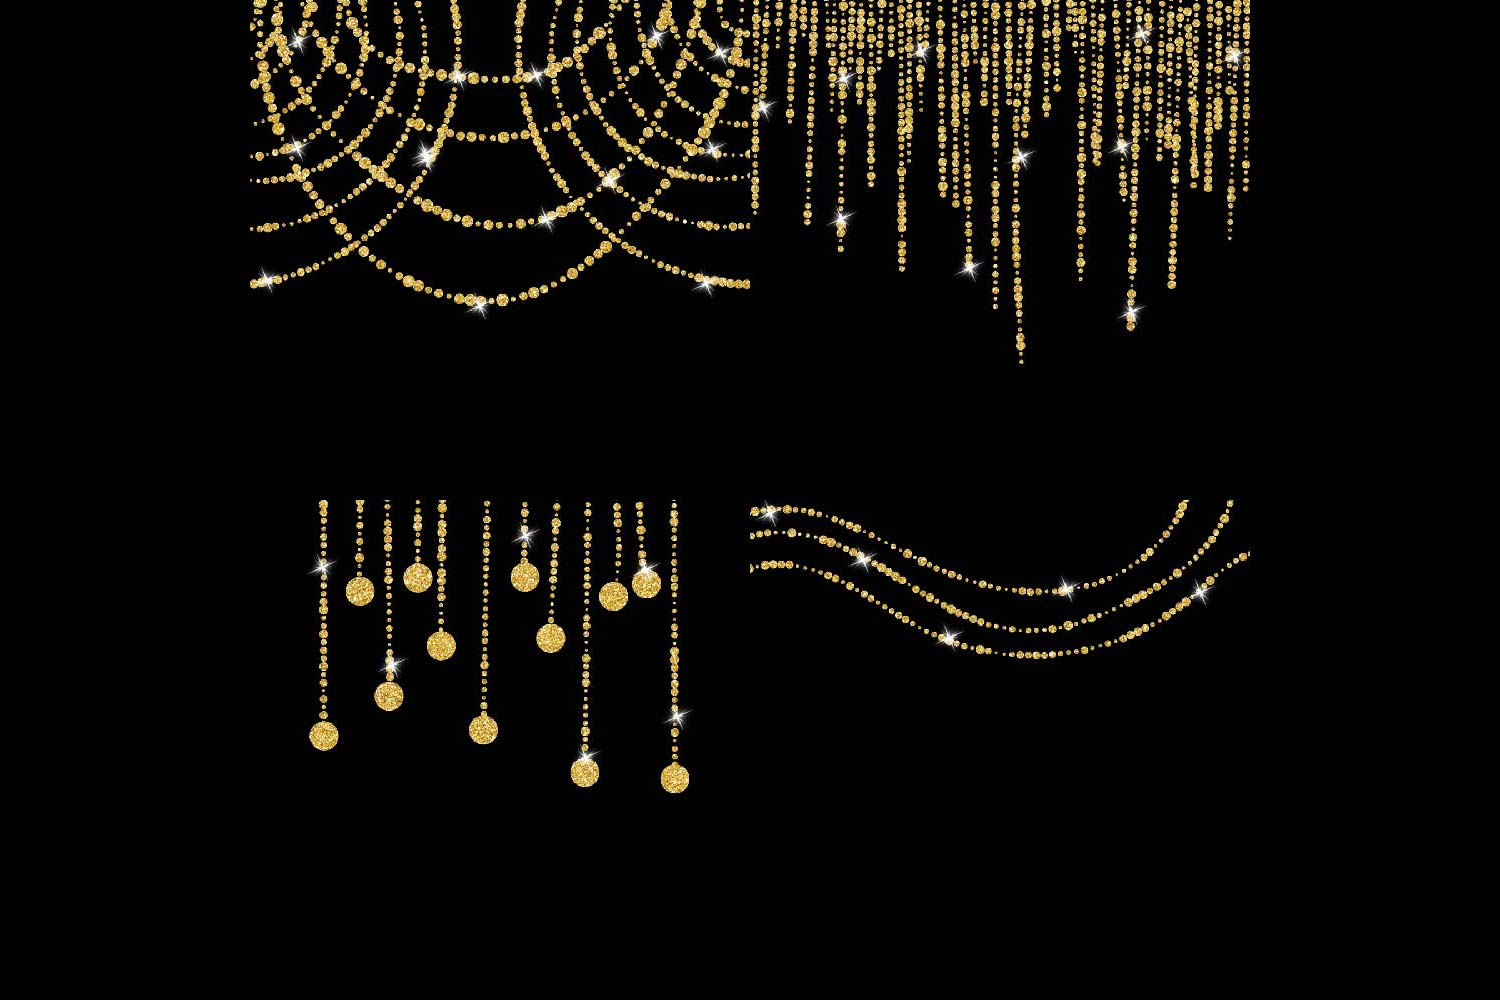 Gold Glitter String Lights Clipart example image 6